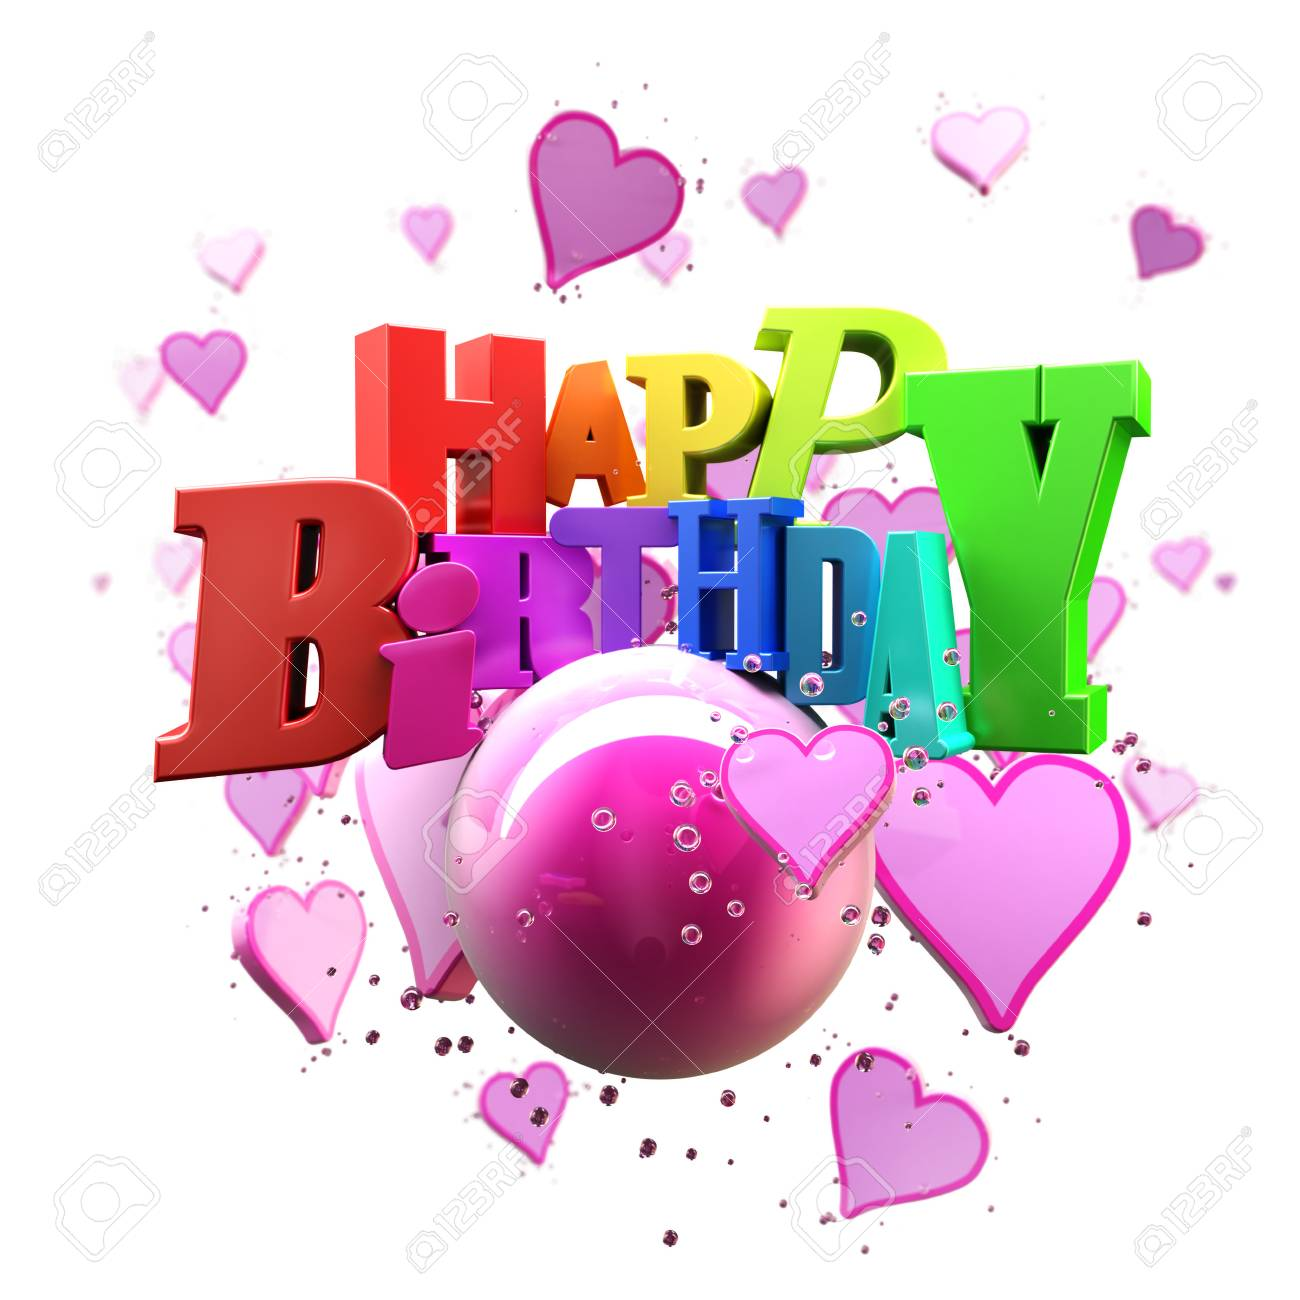 3d Rendering Of A Happy Birthday Greeting Message With Hearts Stock